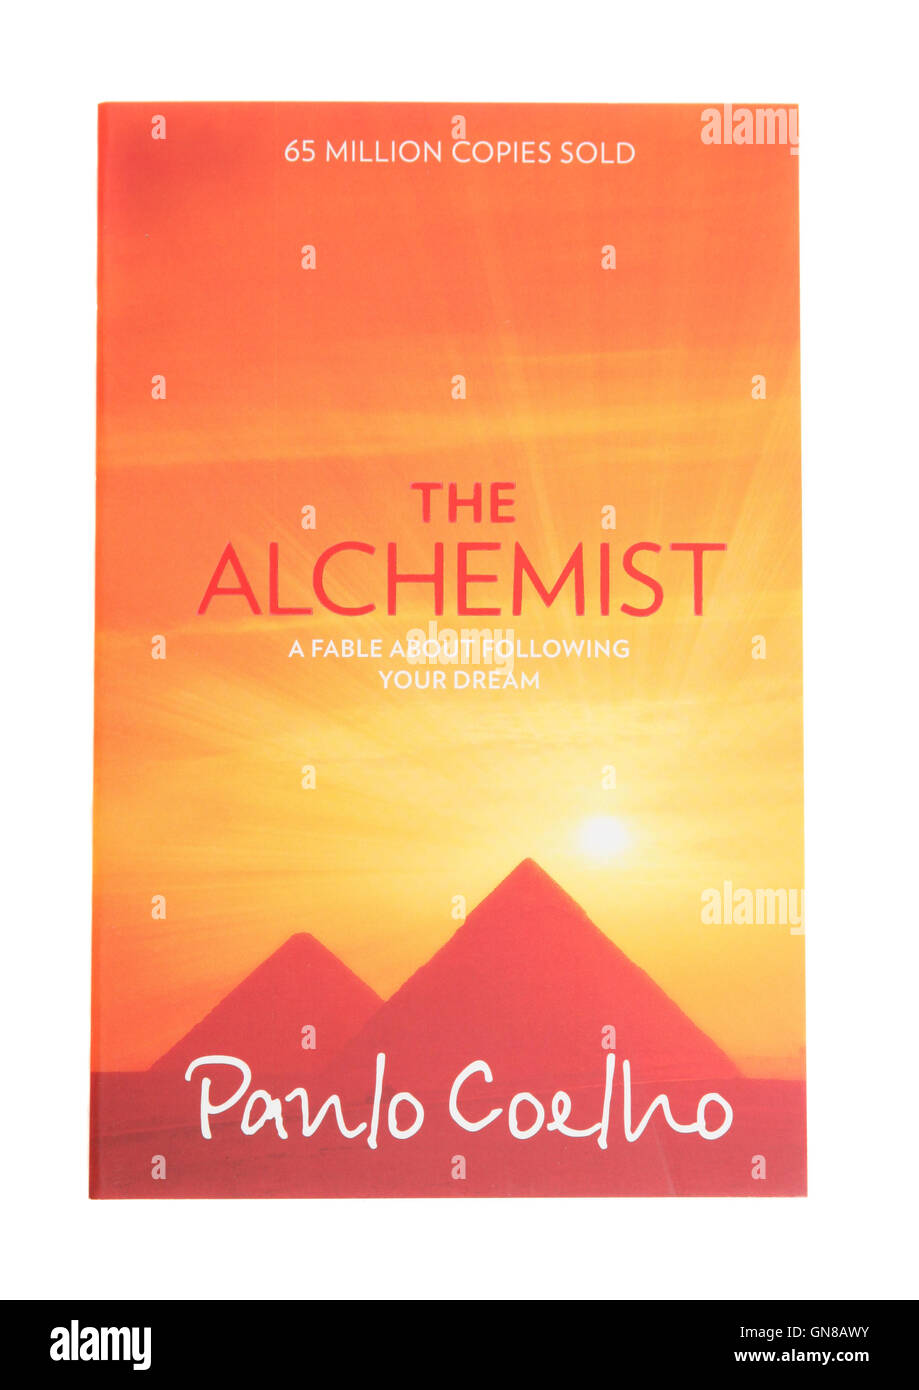 The book The Alchemist by Paulo Coelho - Stock Image